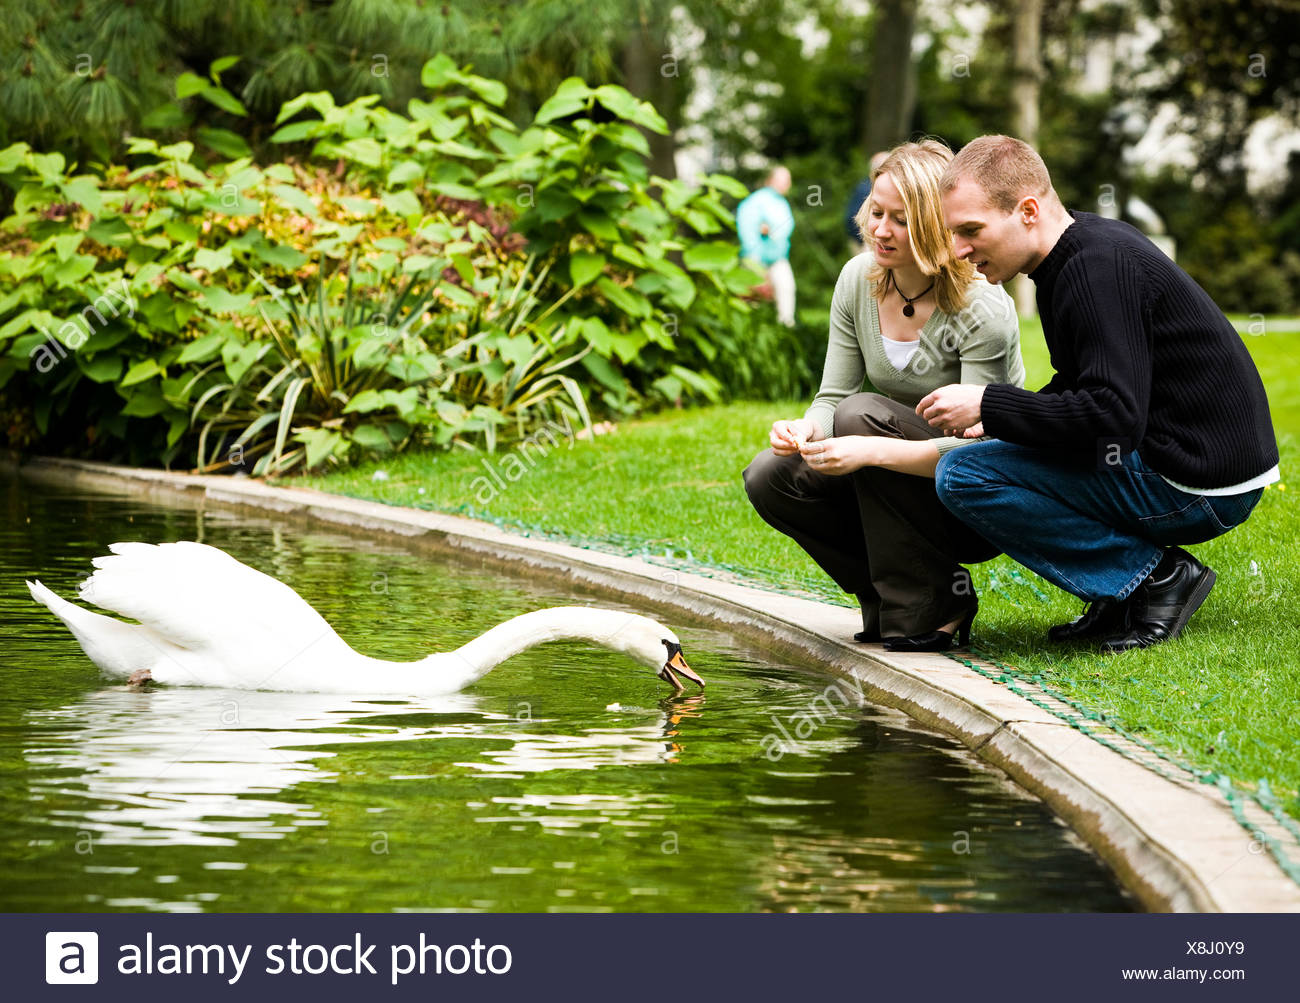 Man and woman and swan - Stock Image